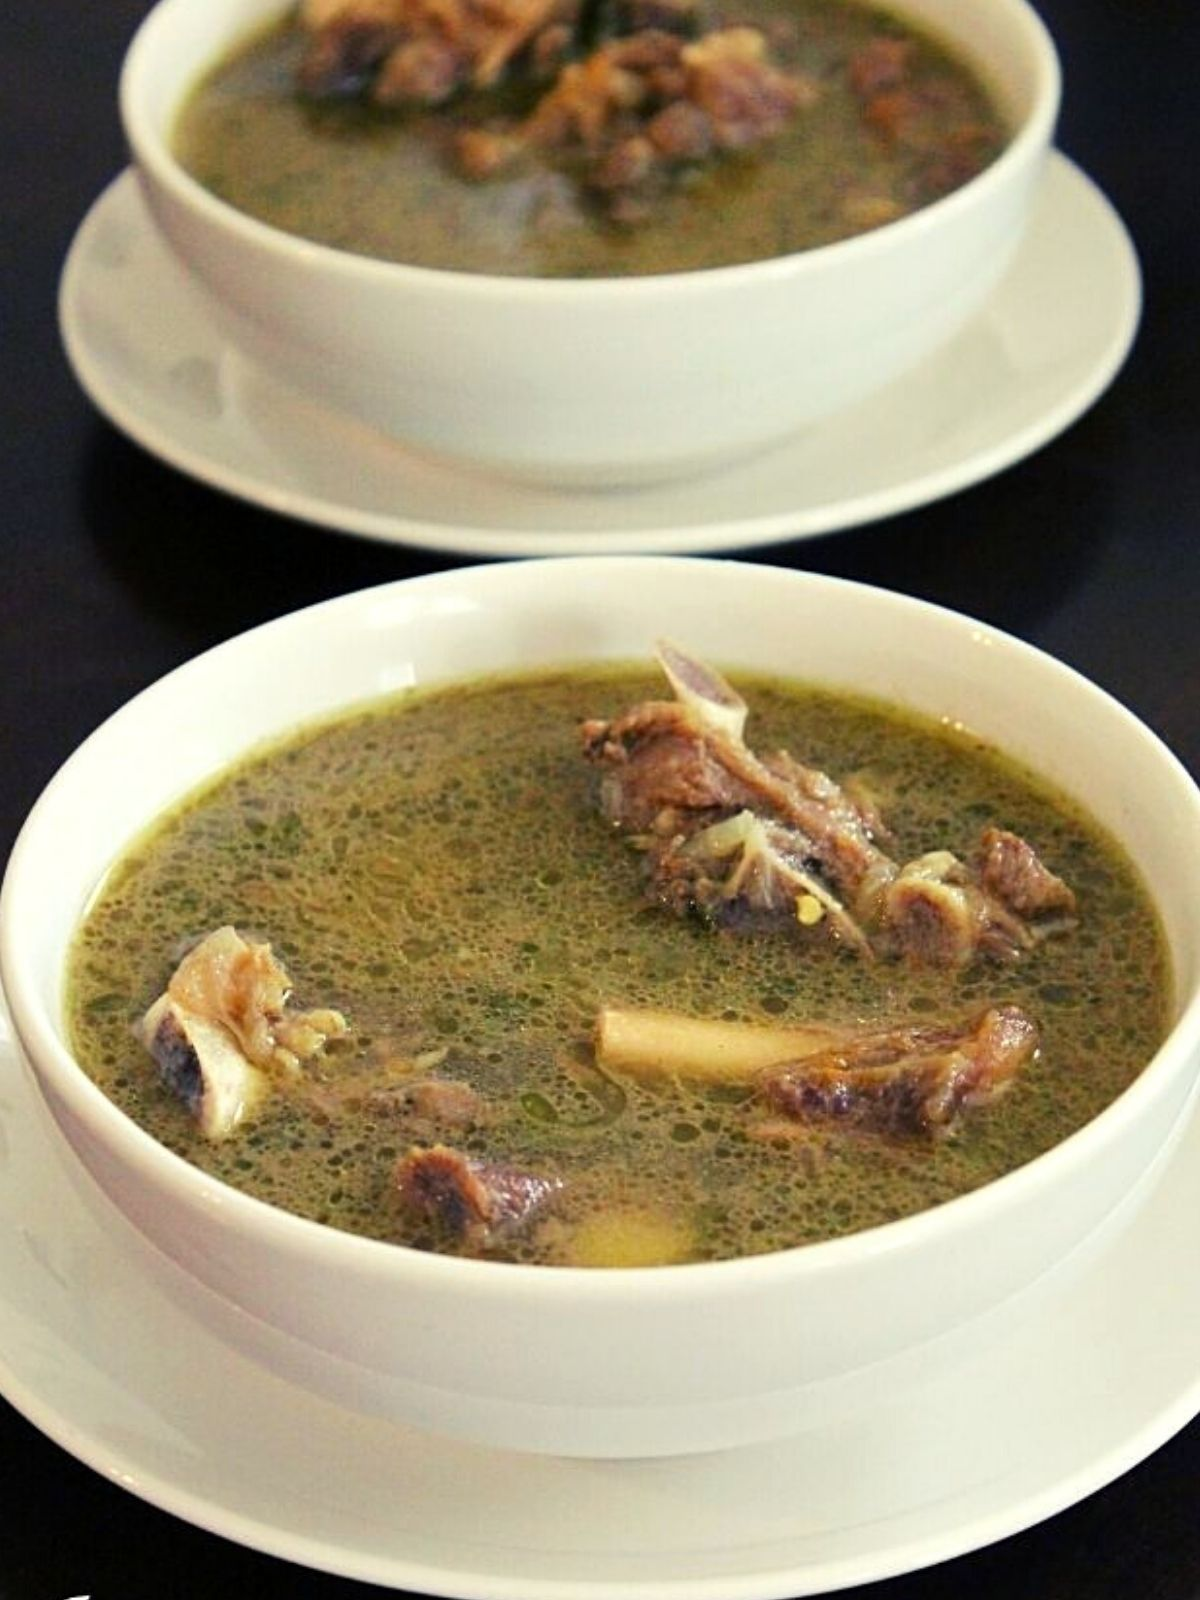 mutton soup placed in two serving bowls with cooked mutton pieces on the soup